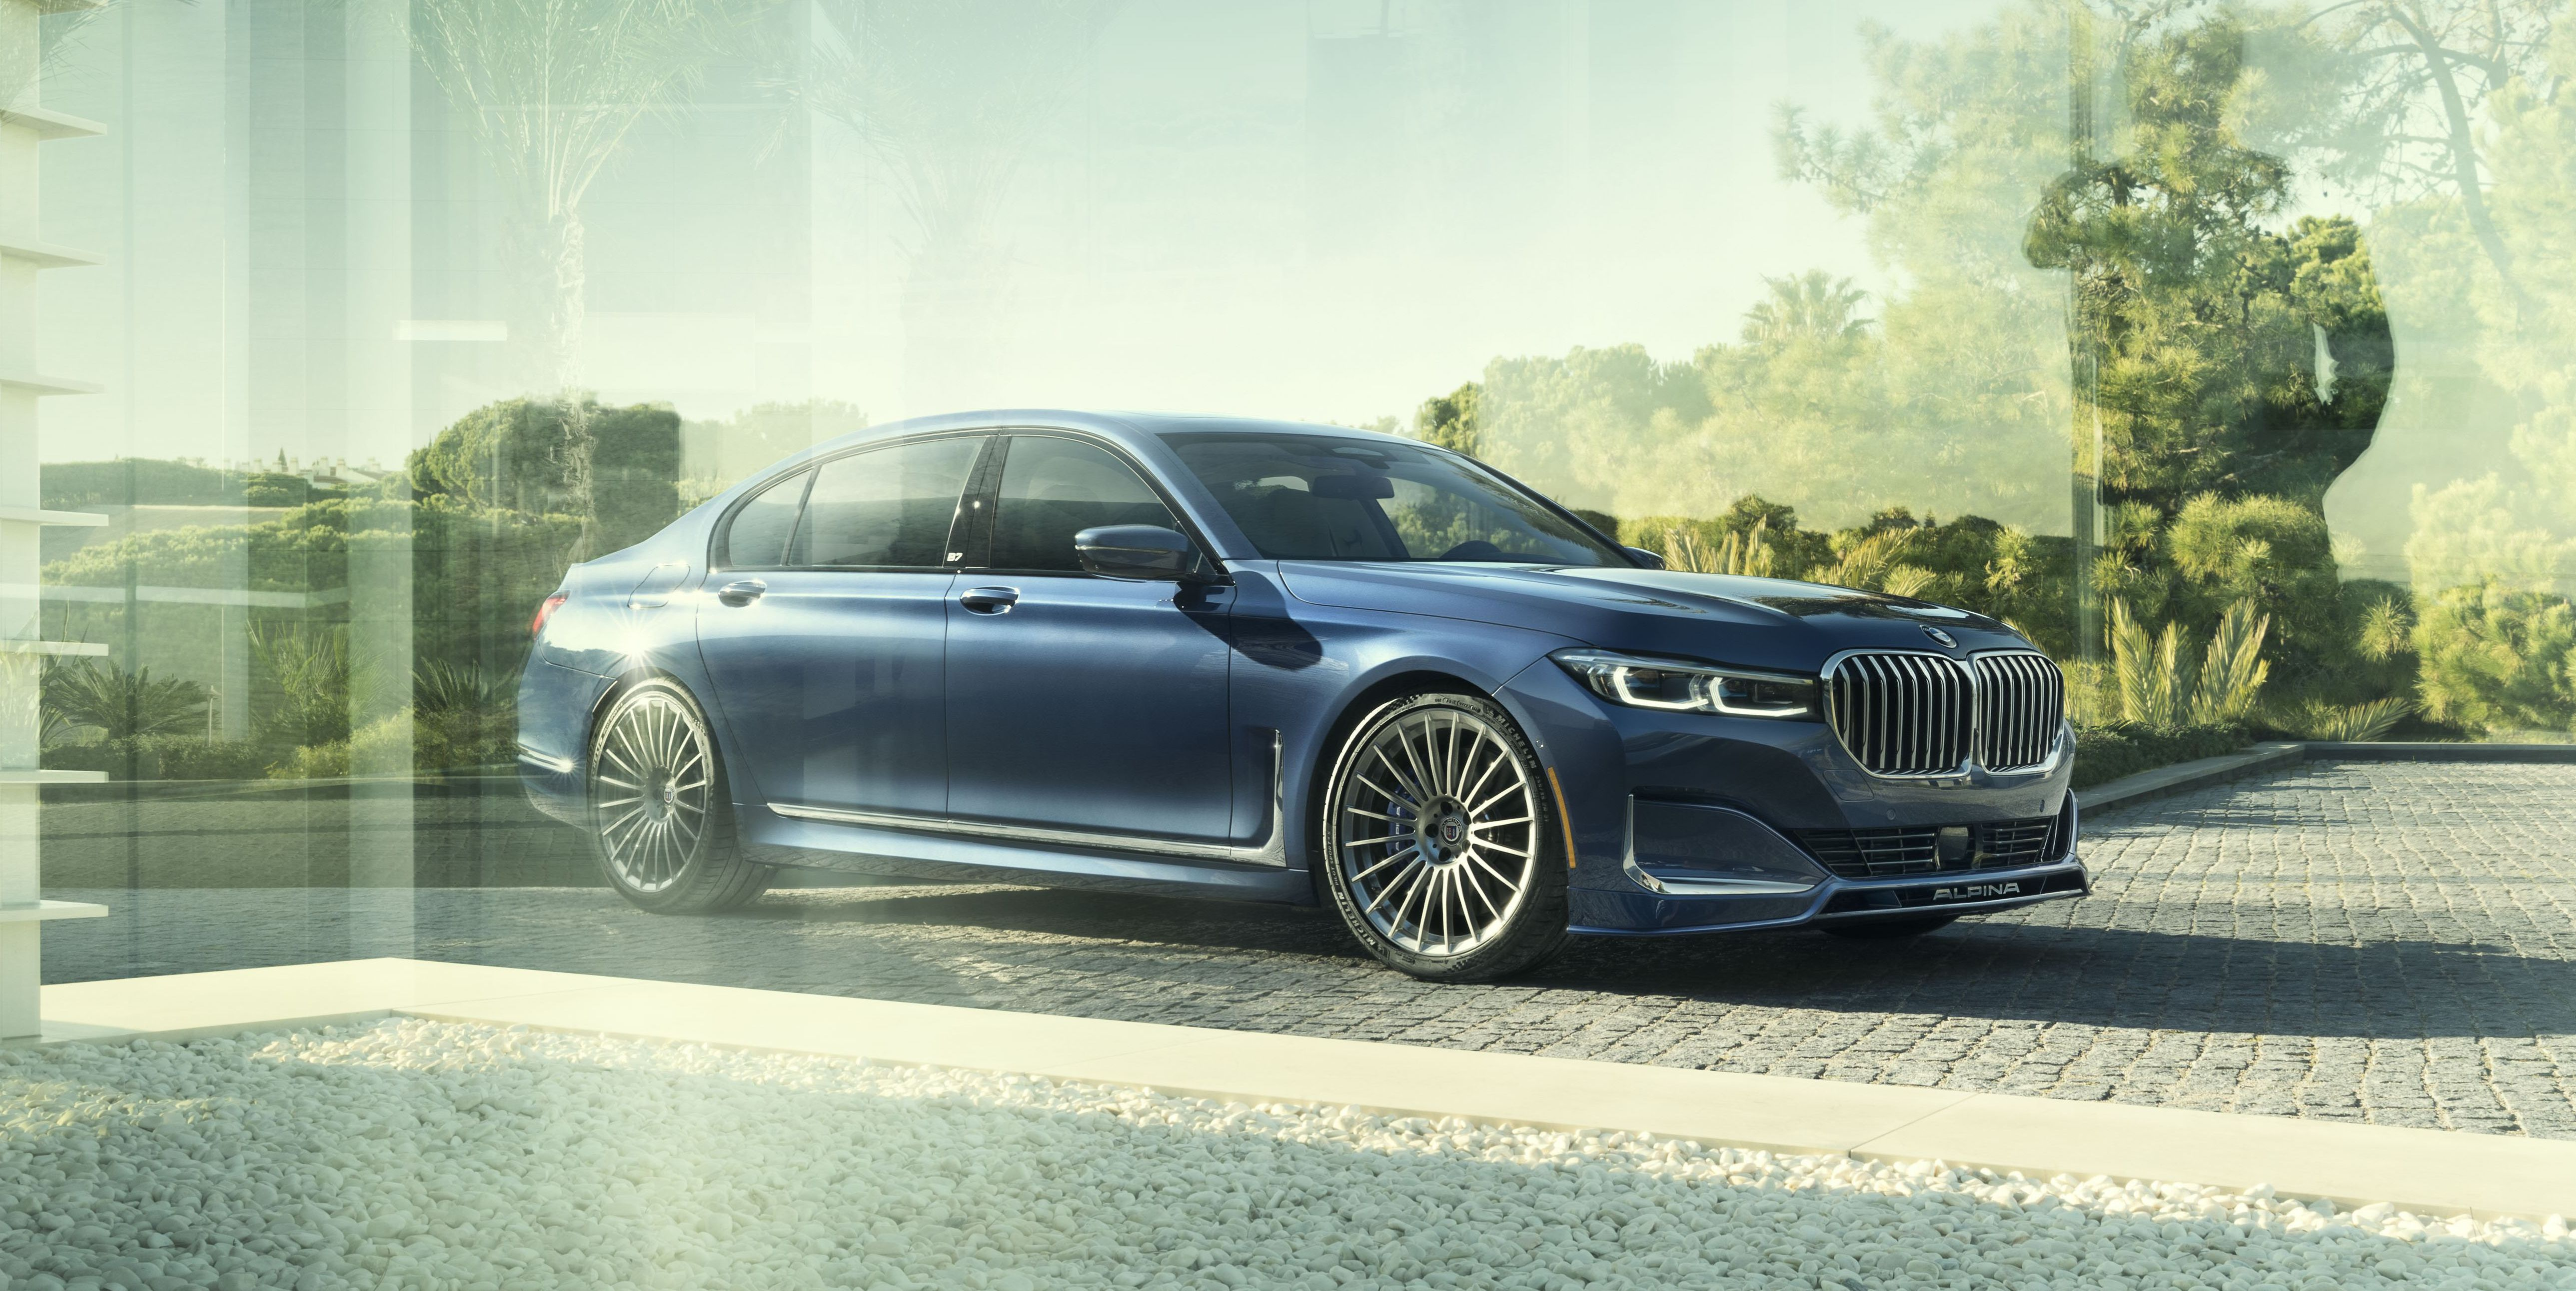 The 2020 BMW Alpina B7 Is the Fastest Sedan You Can Buy